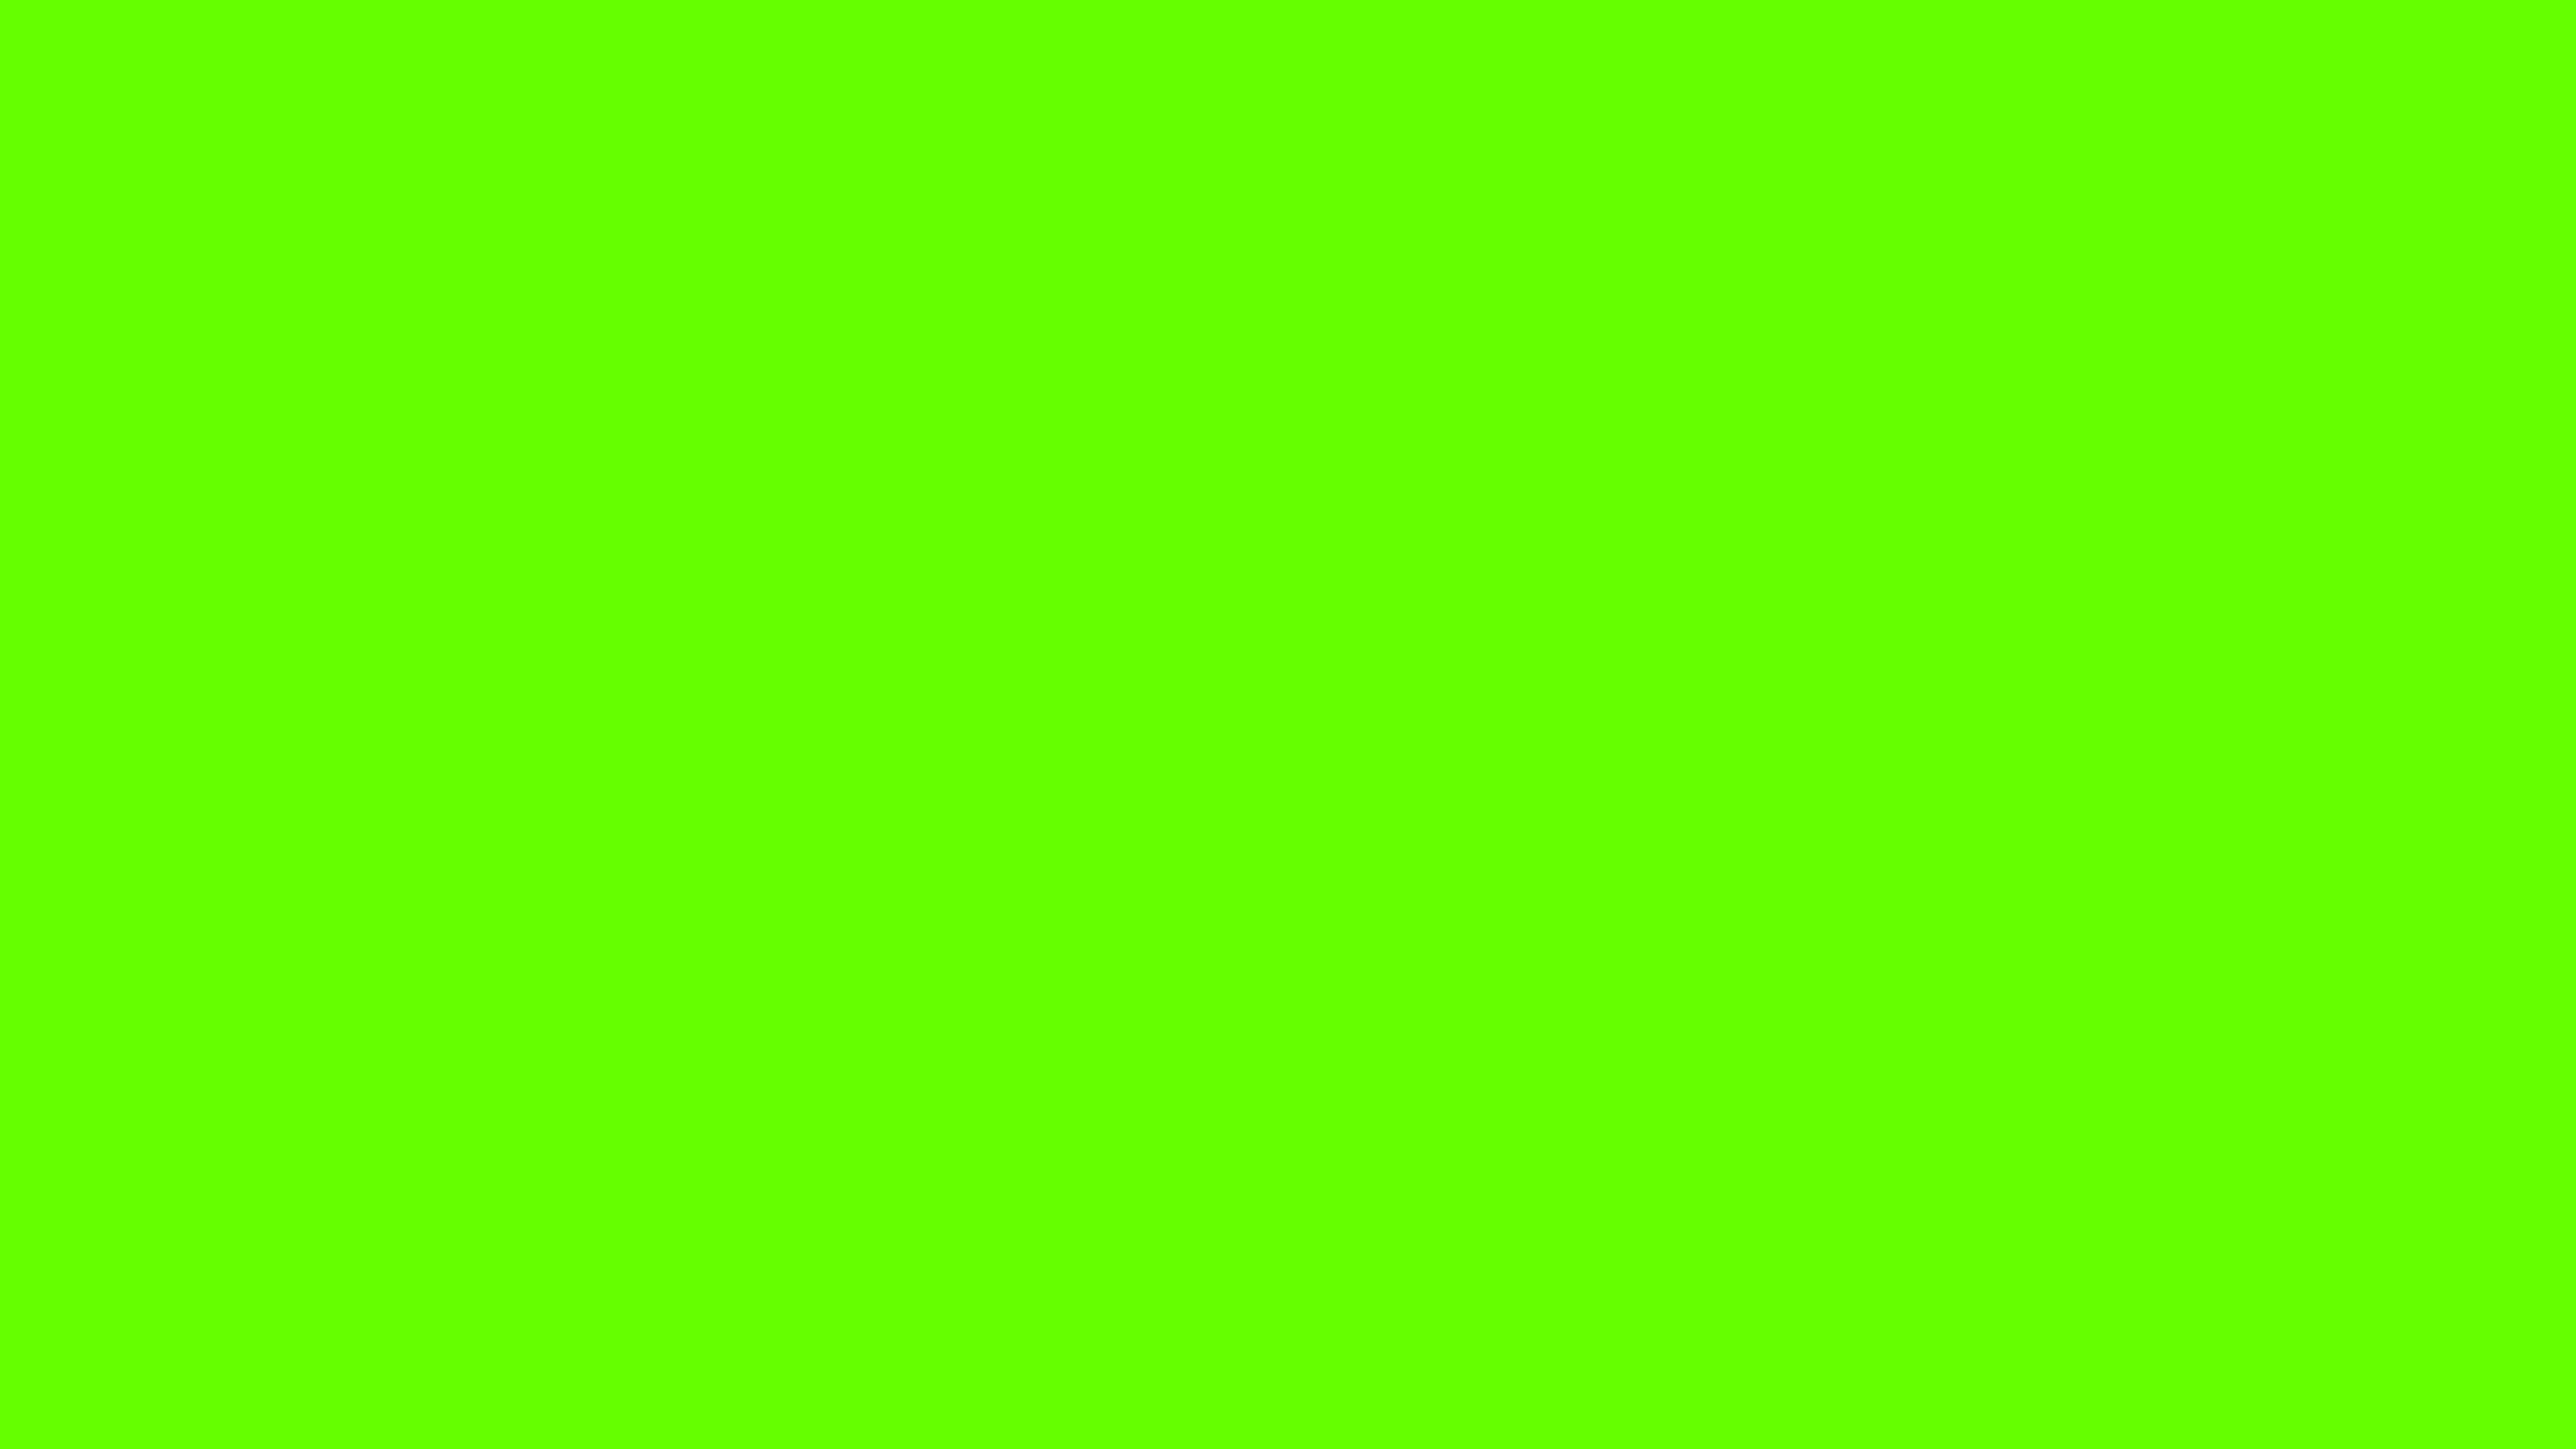 7680x4320 Bright Green Solid Color Background